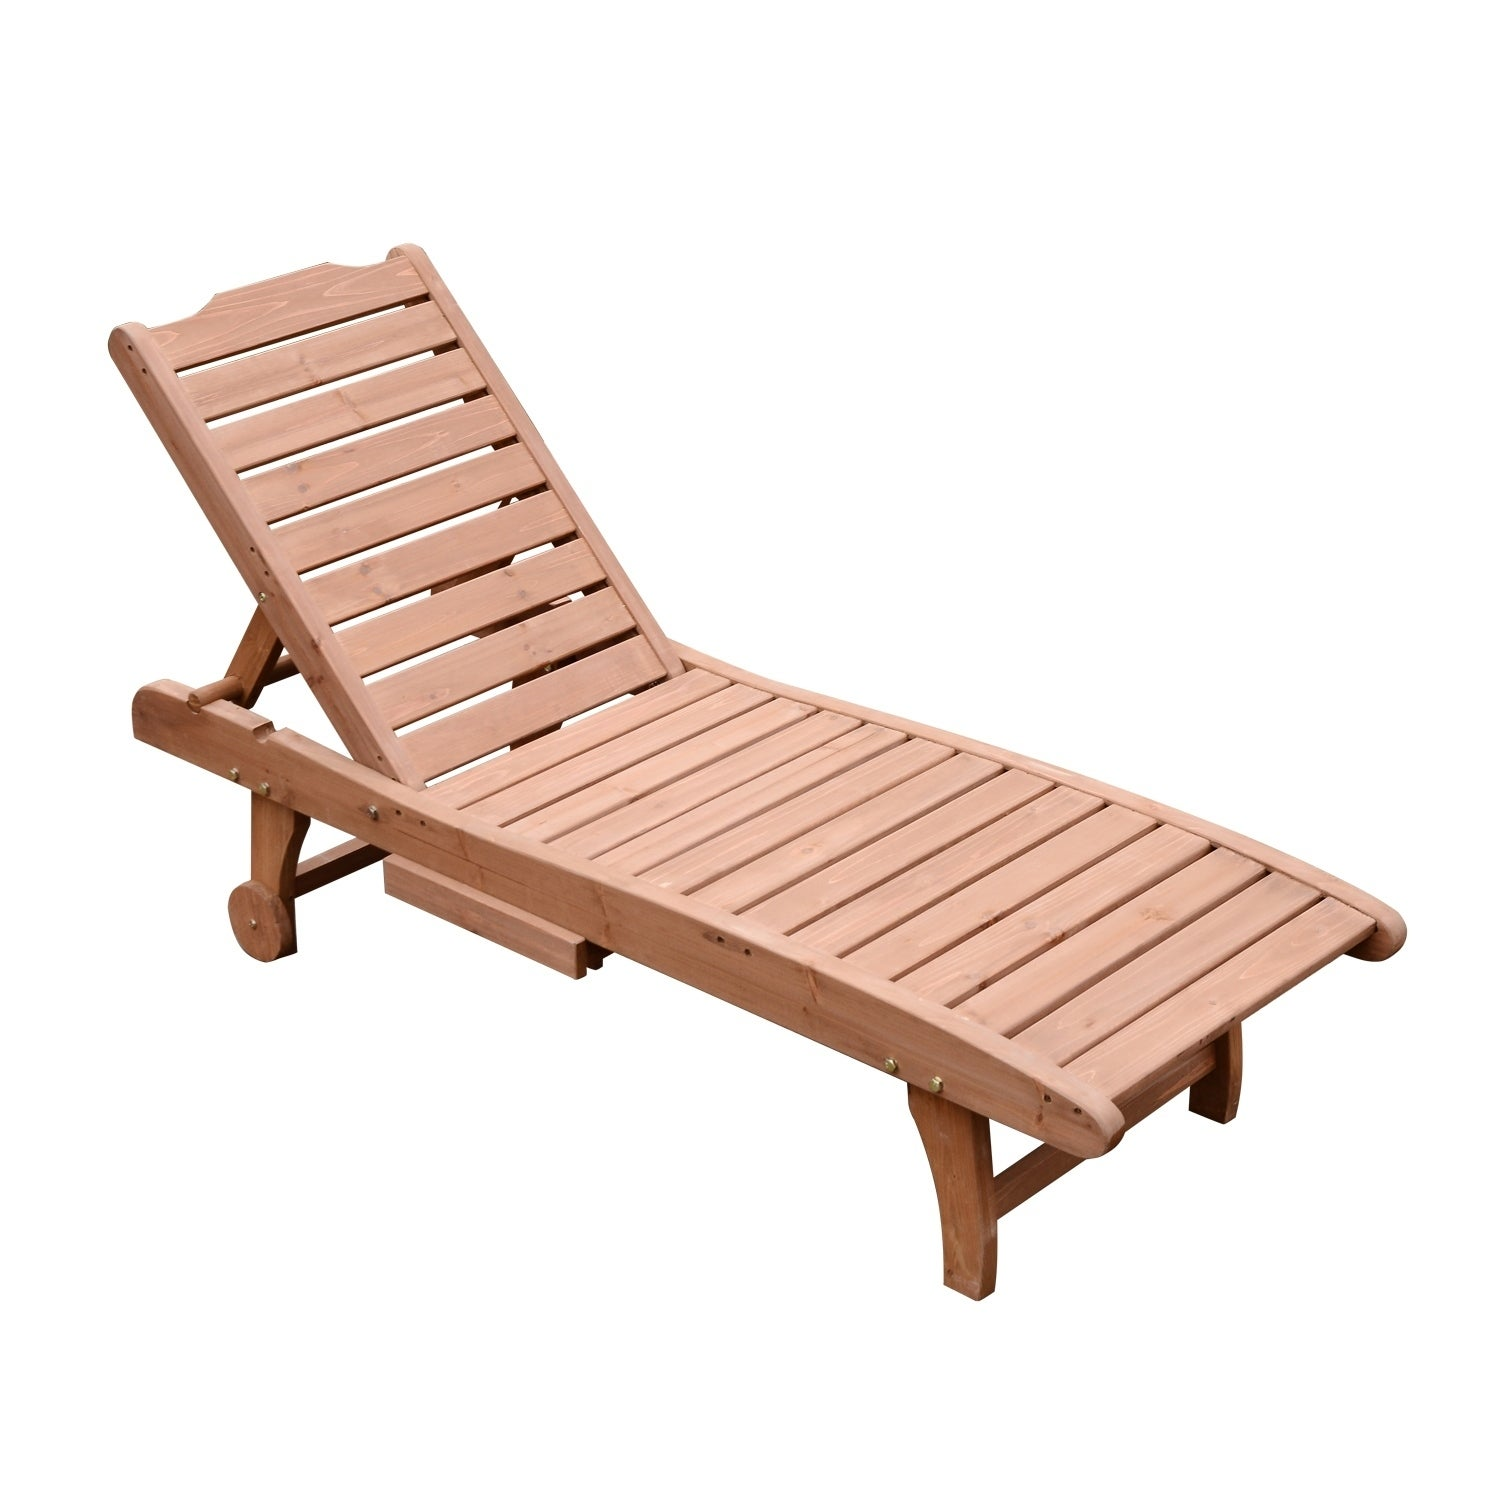 Shop Outsunny Wooden Outdoor Chaise Lounge Patio Pool Chair W Pull